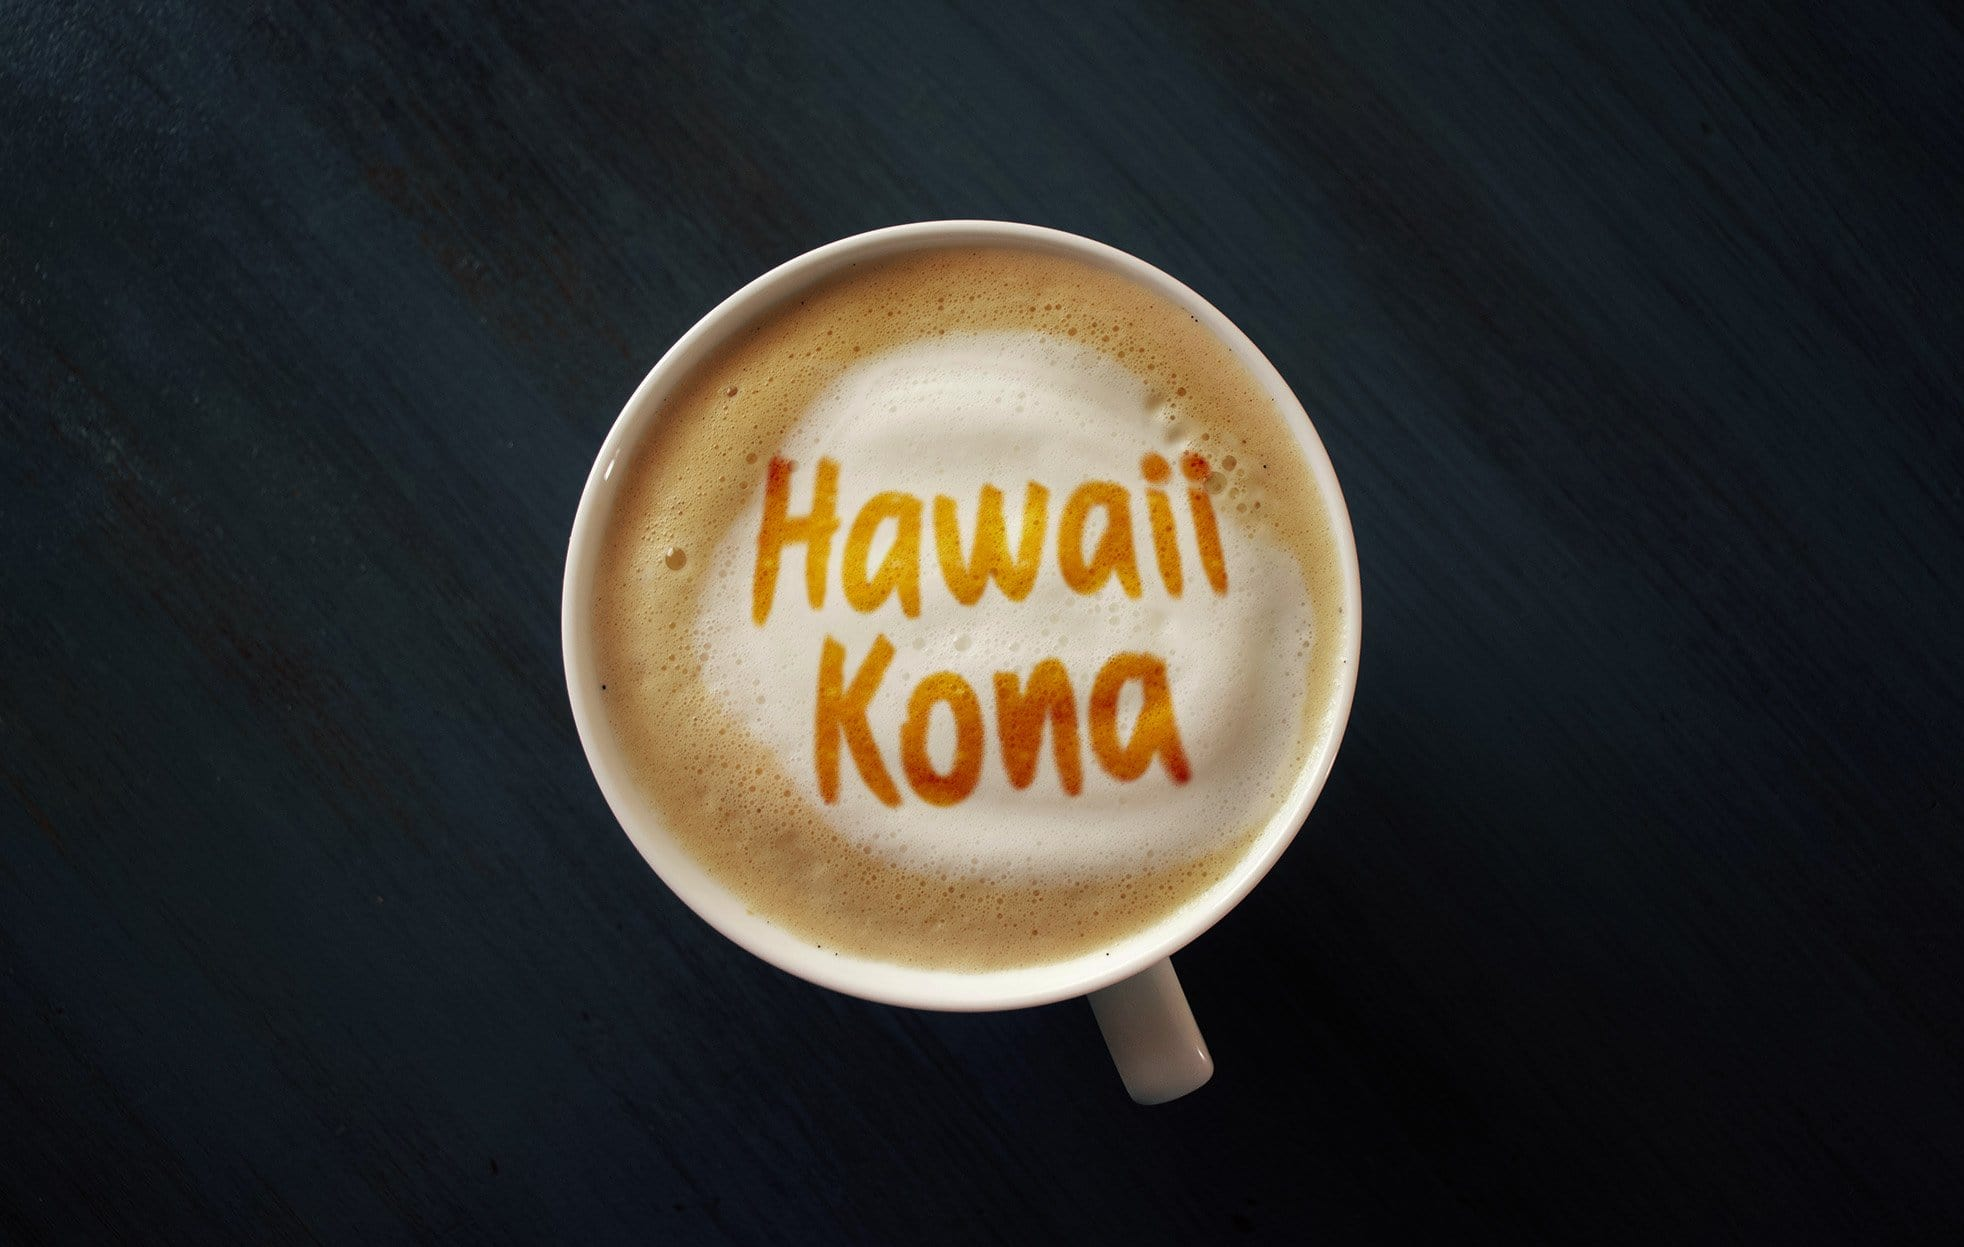 1 lb Custom Roasted Hawaii Kona Coffee - Fresh Ground or Whole Bean Coffee - Custom fresh Roasted Coffee made with freshest beans | Kona, Blue Mountain